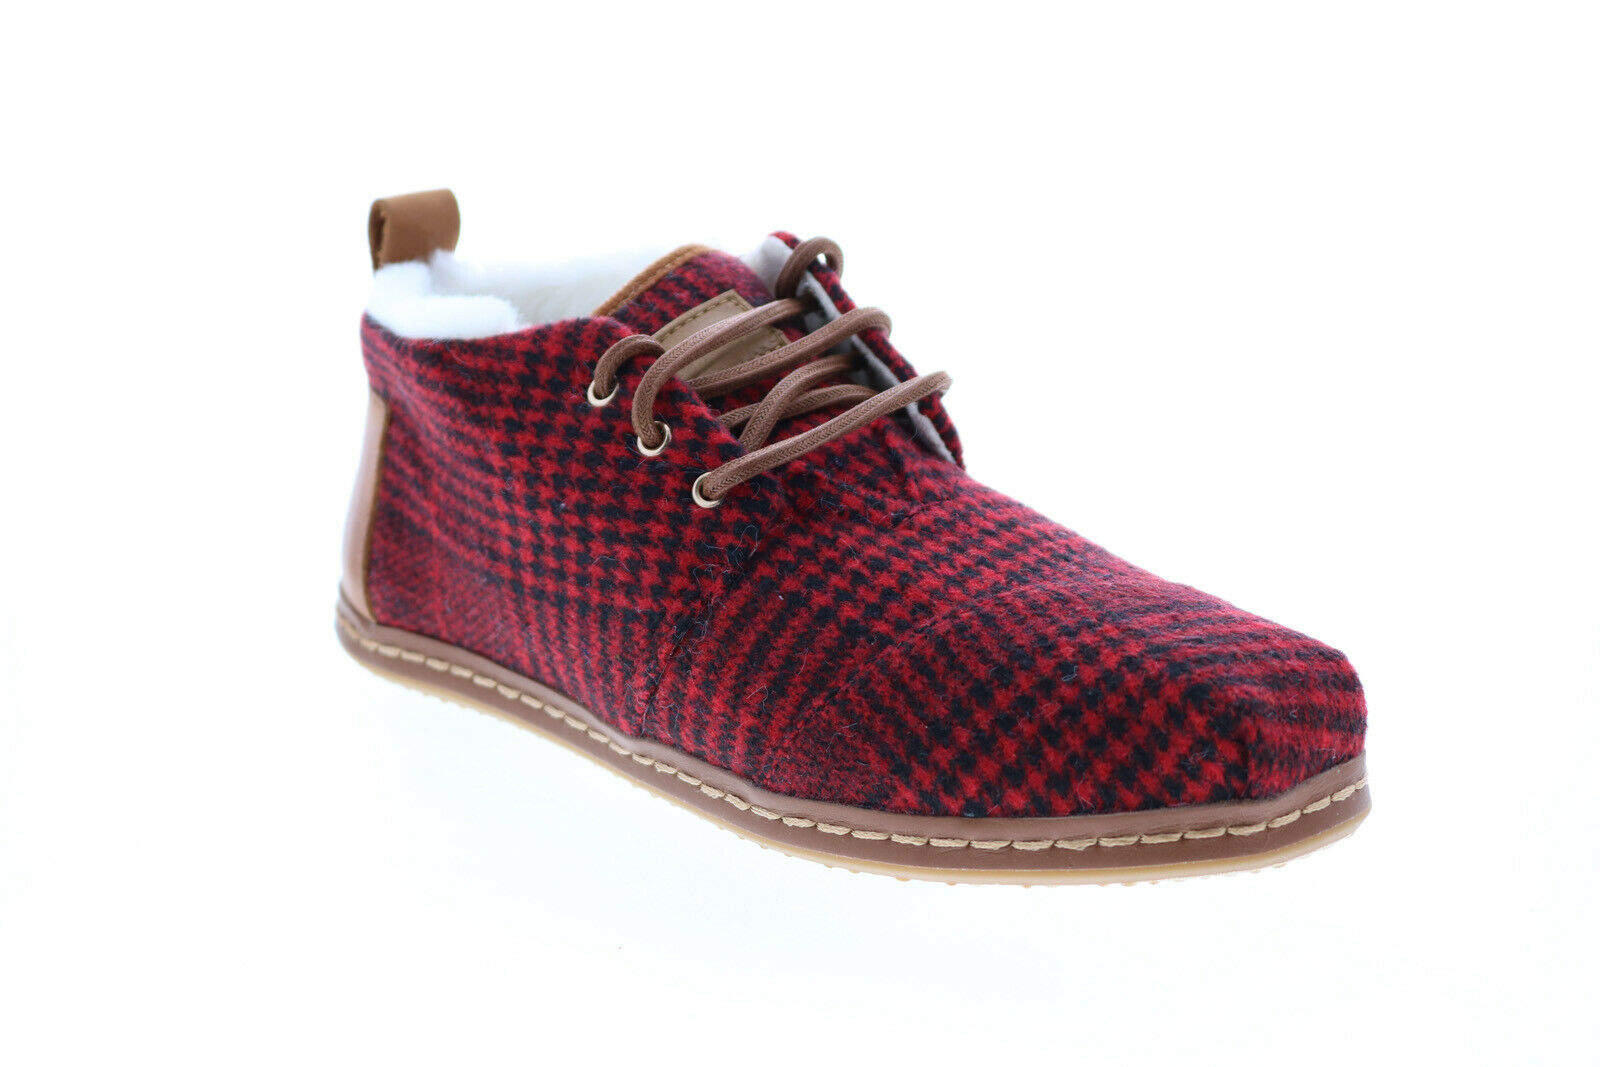 Toms Bota 10014915 Womens Red Mesh Lace Up Lifestyle Sneakers Shoes 7.5